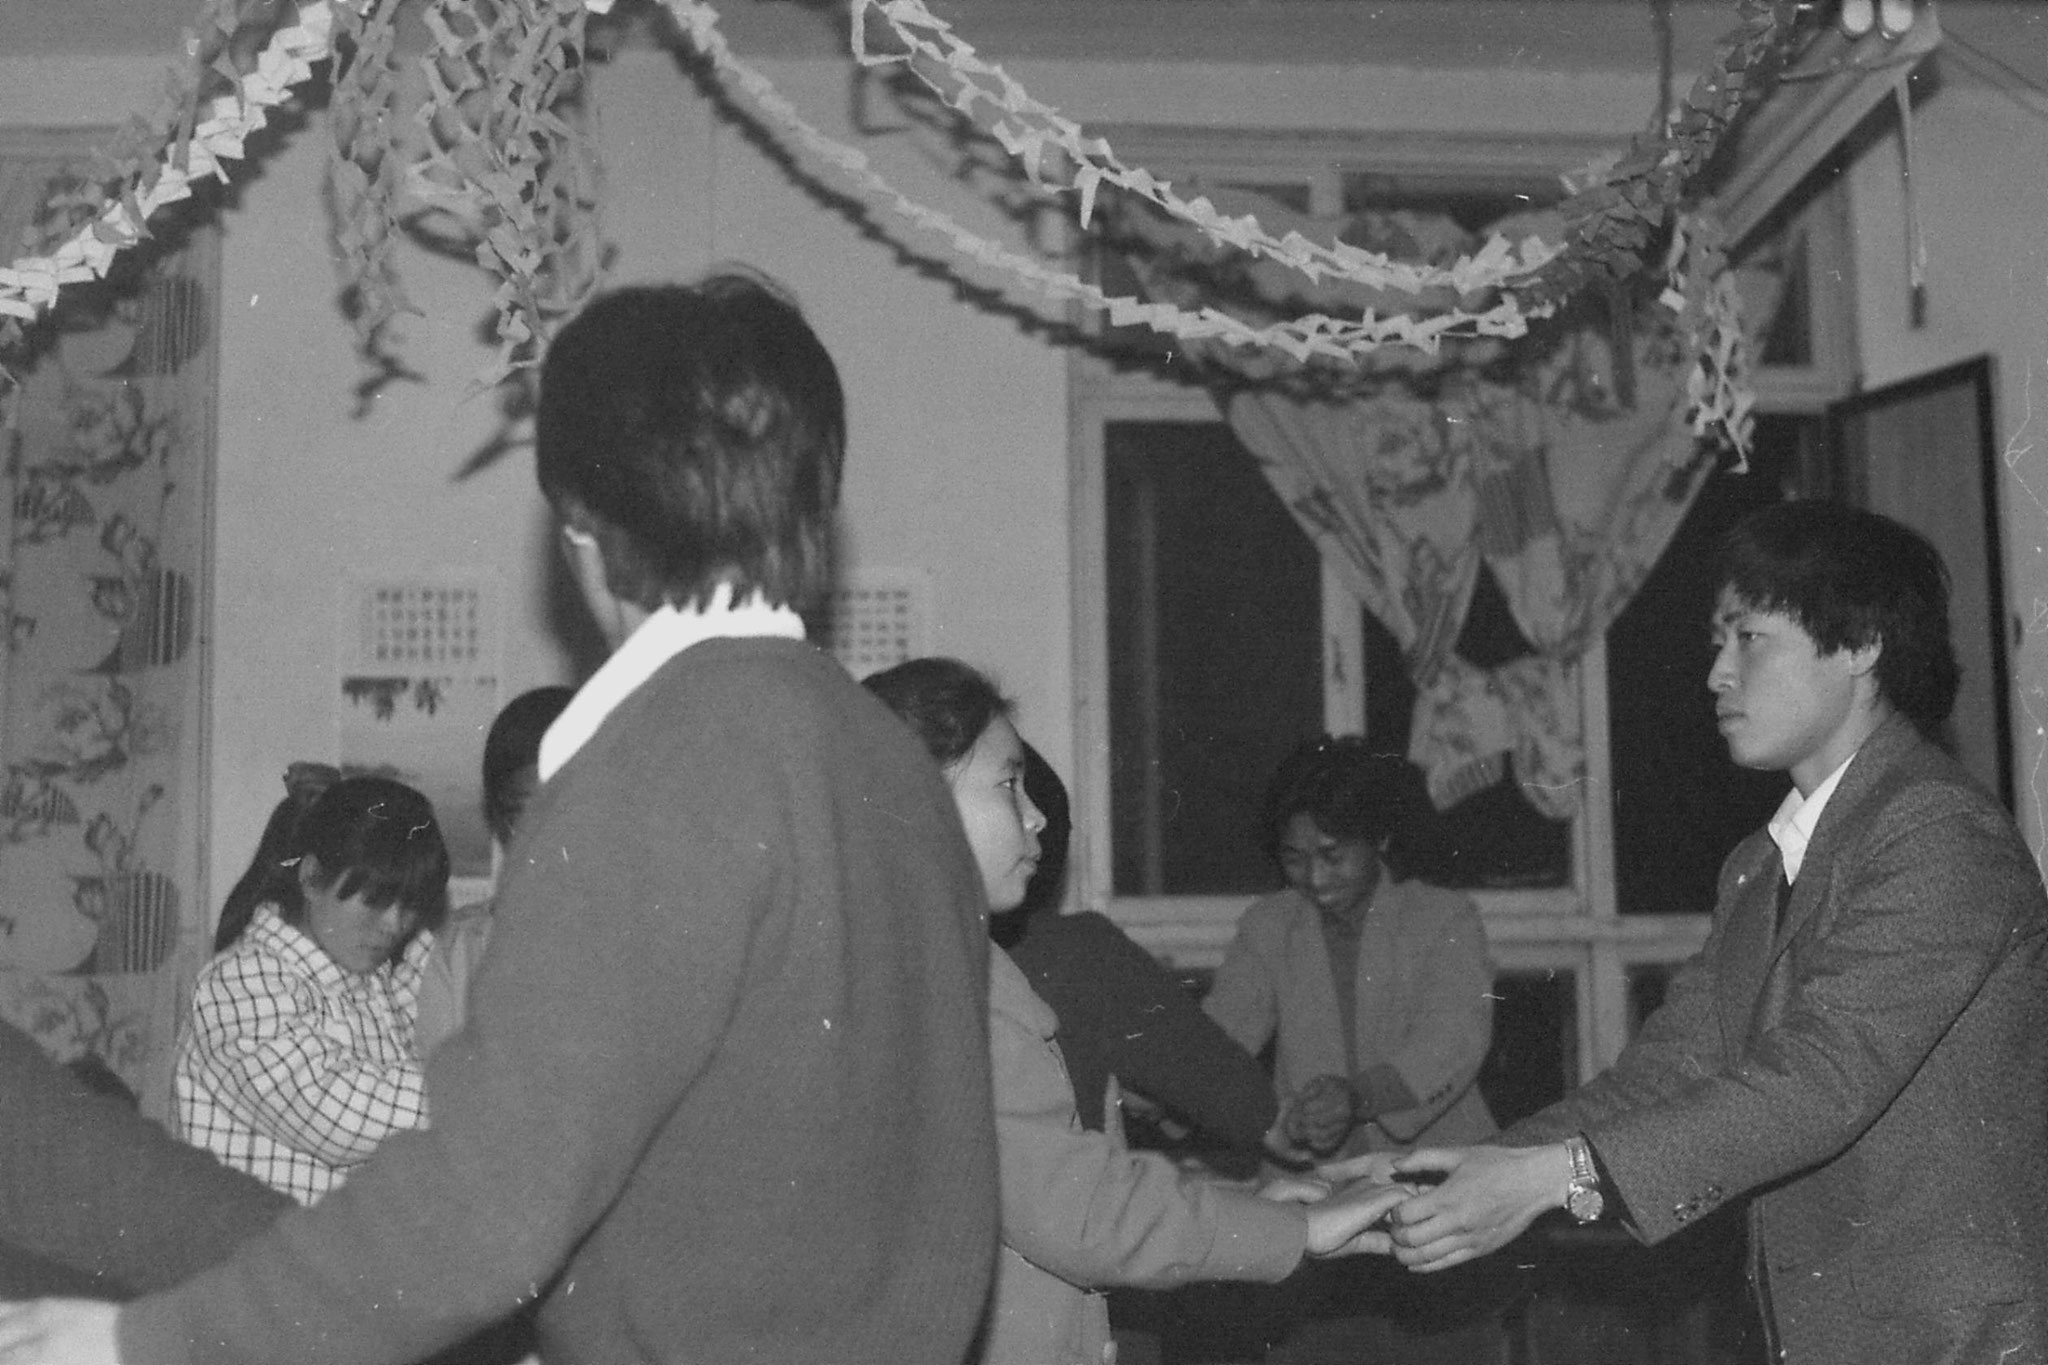 12/11/1988: 1: Party at Beijing Industrial Institute